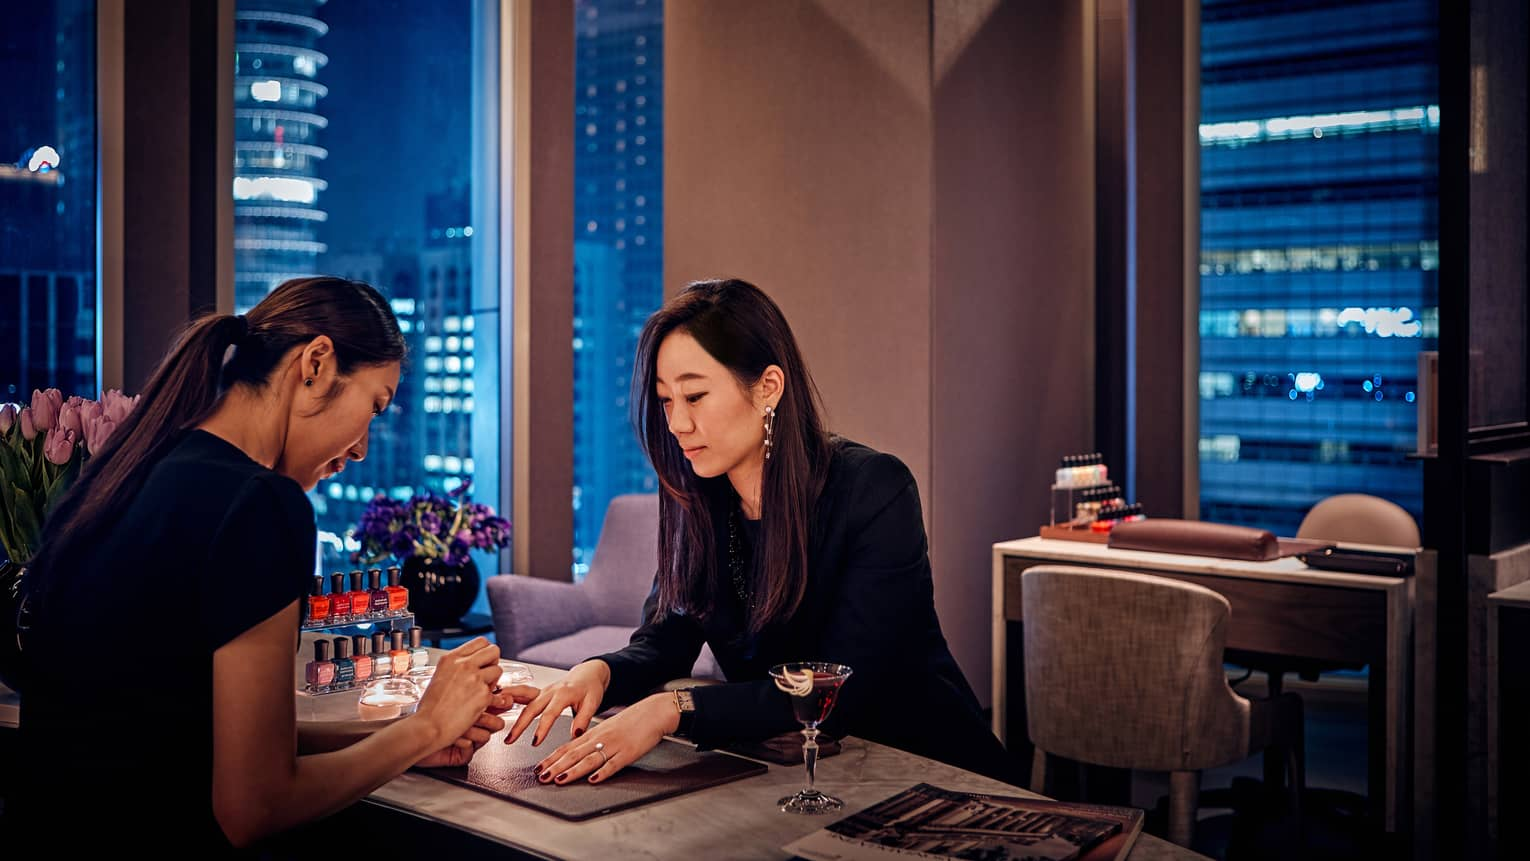 Woman gets manicure at table in hotel salon Nail Bar at night